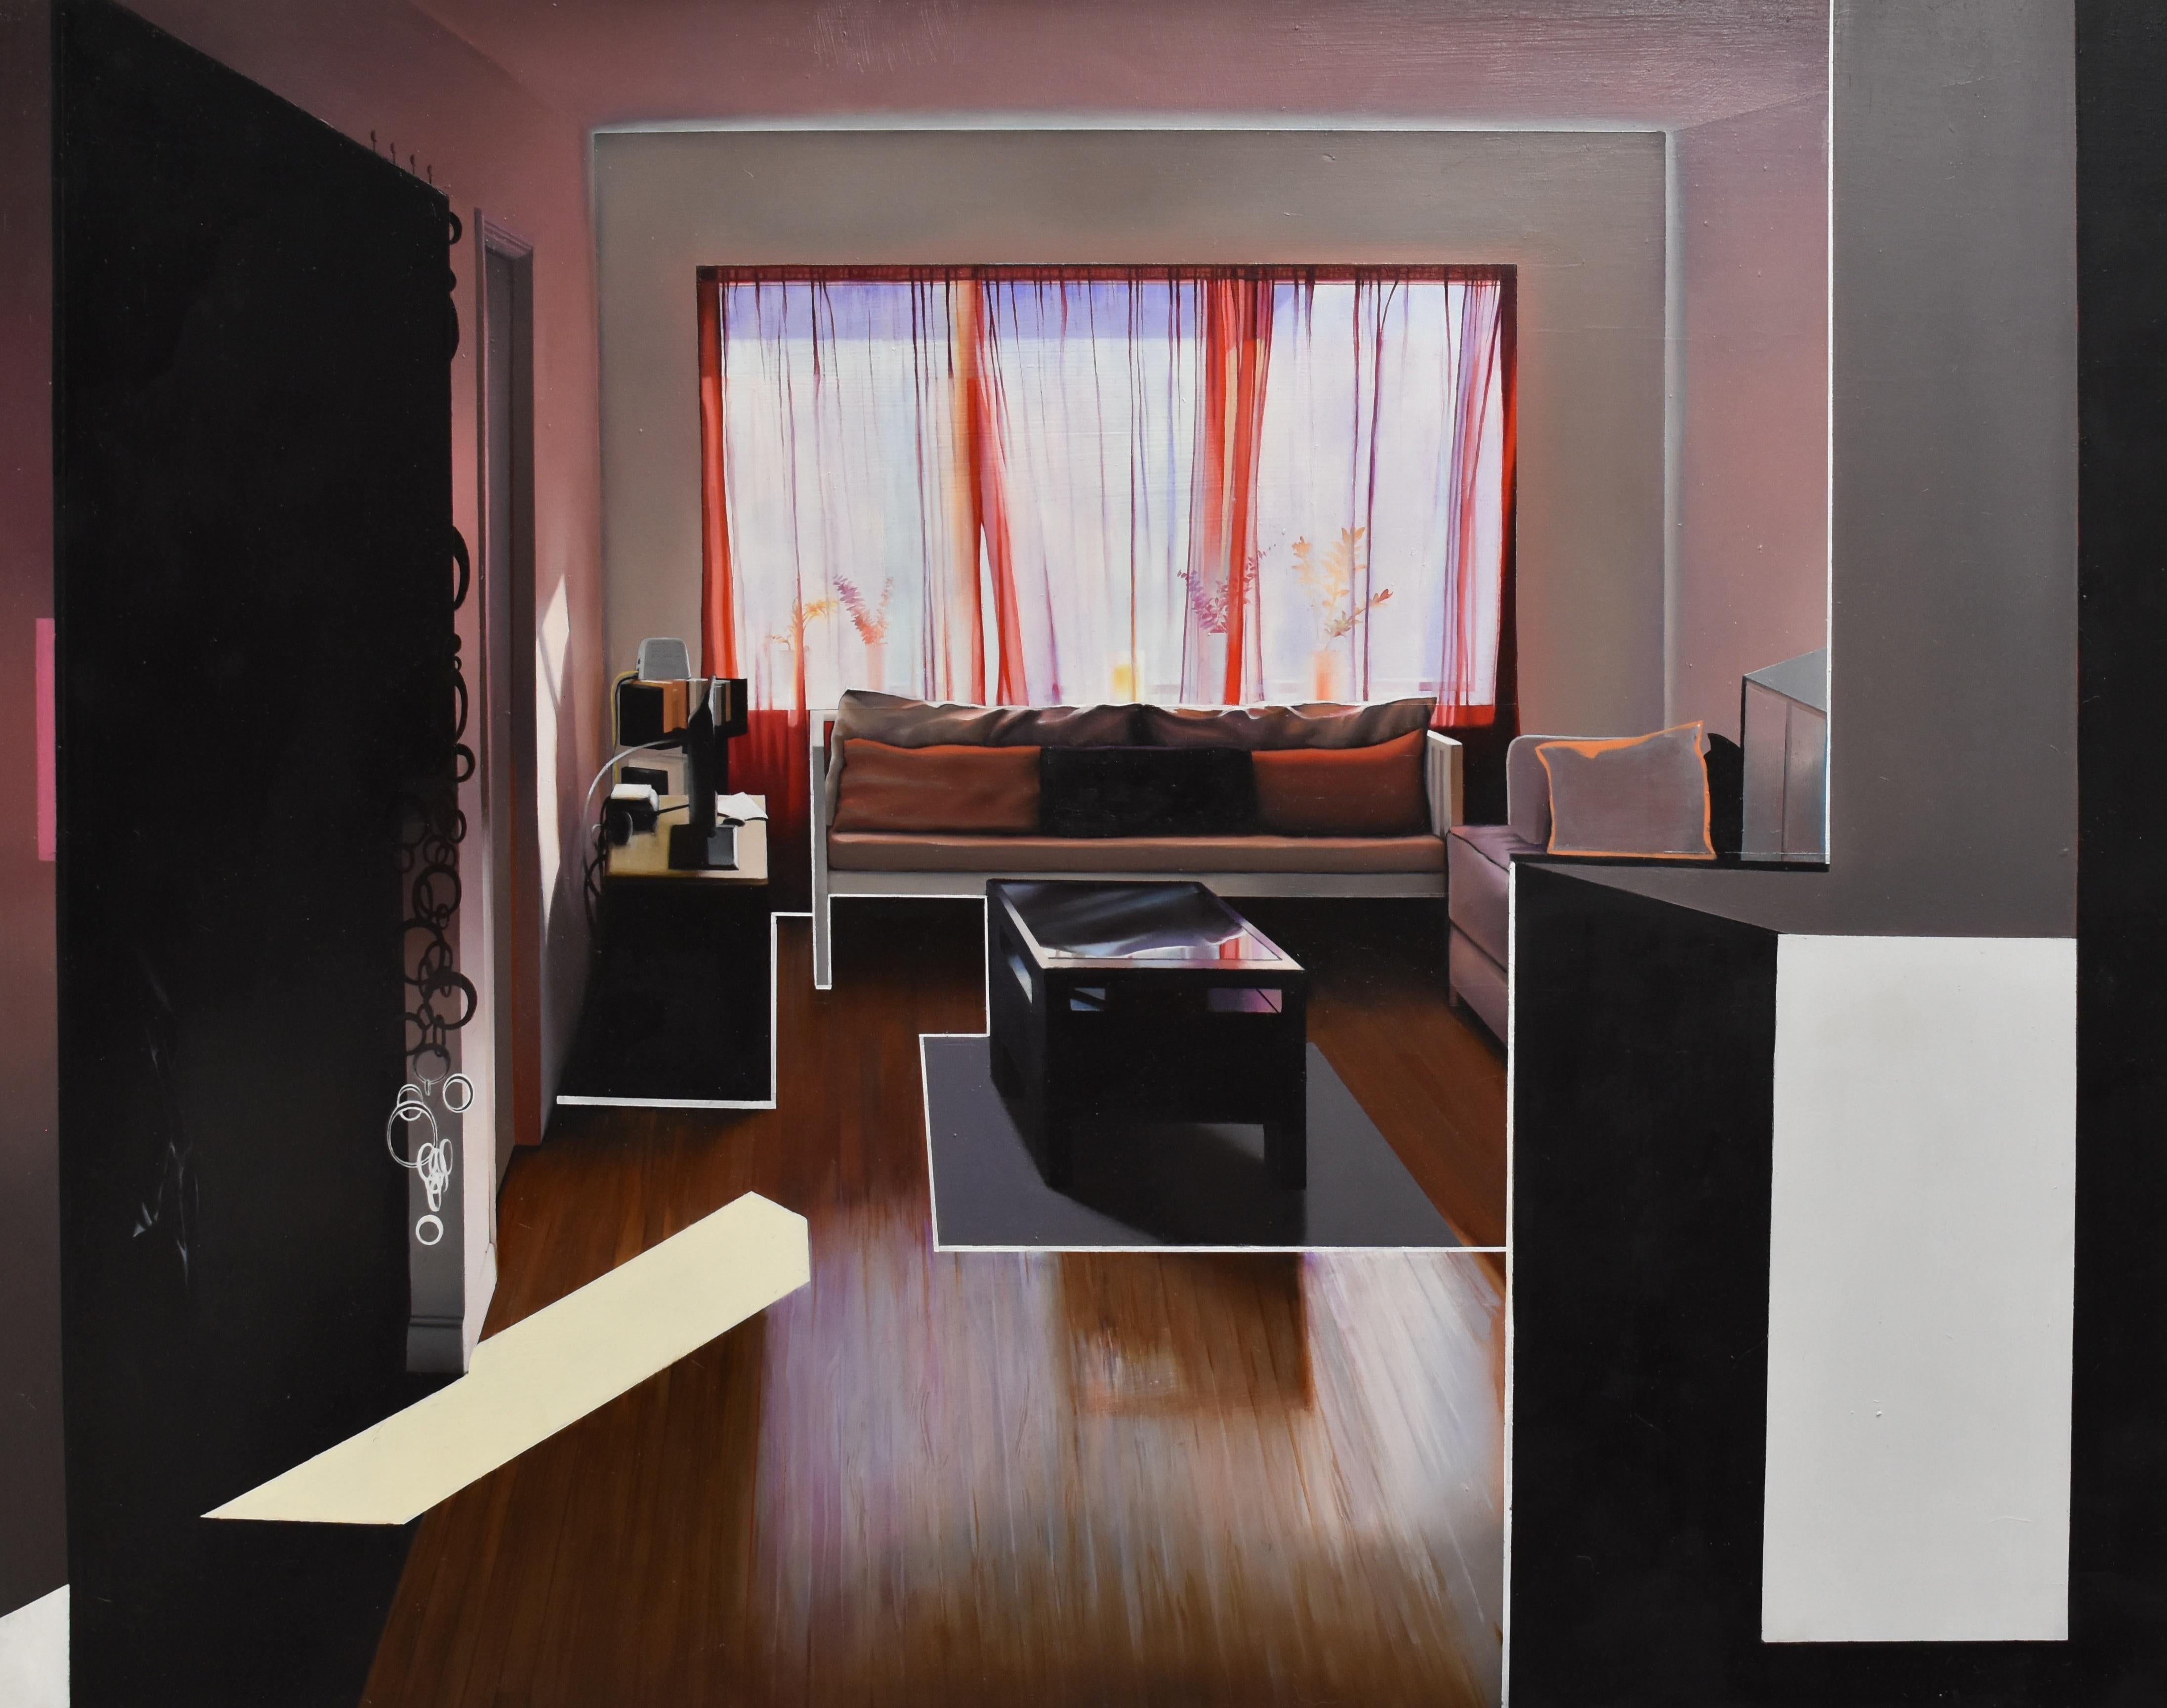 April in My Old Home, realist interior oil painting, 2013